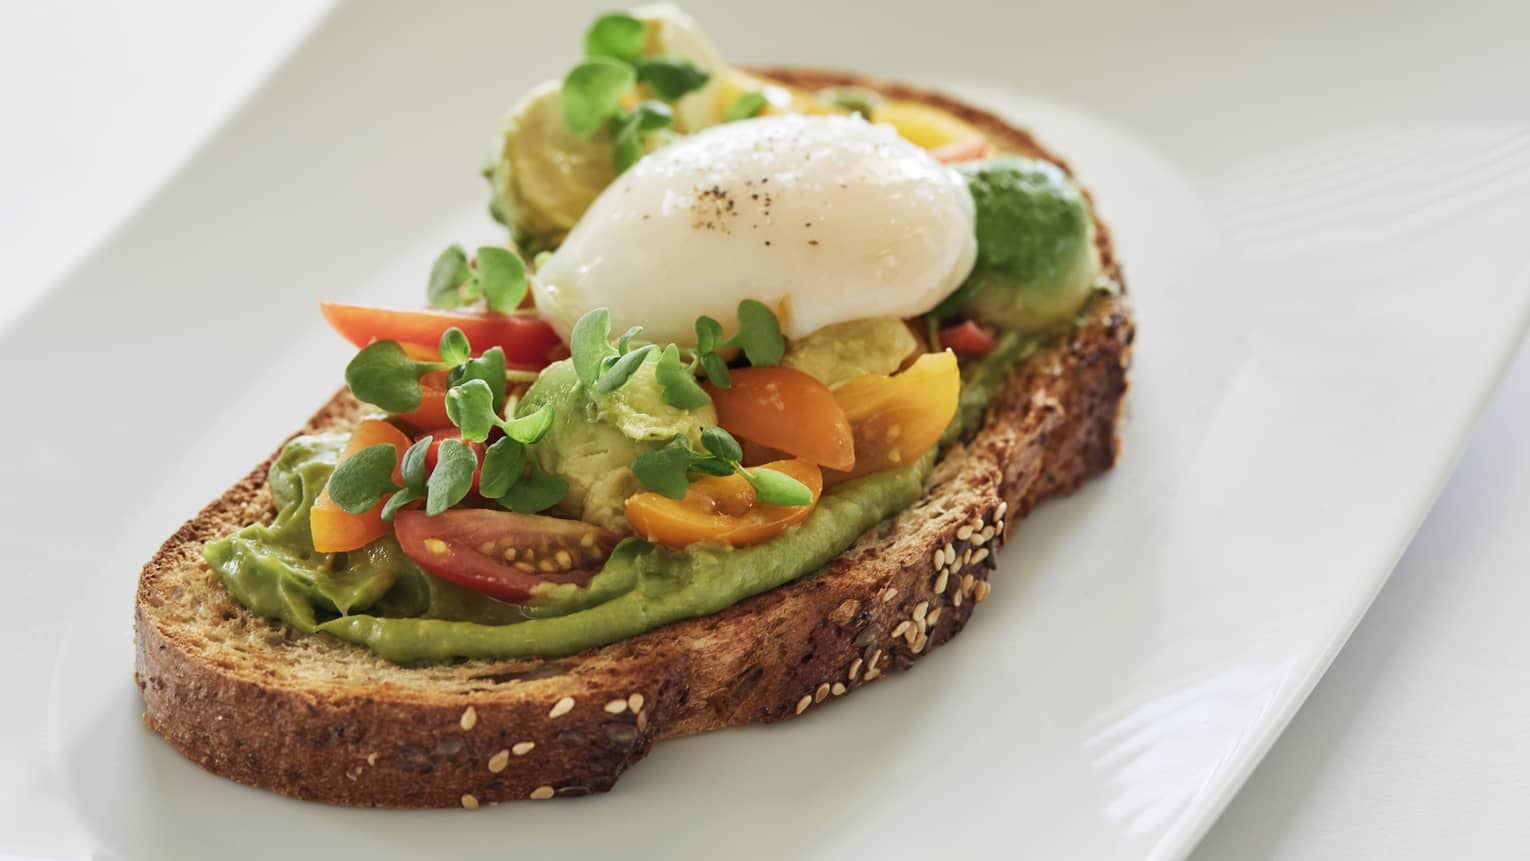 Avocado toast with cherry tomatoes, sprouts, poached egg